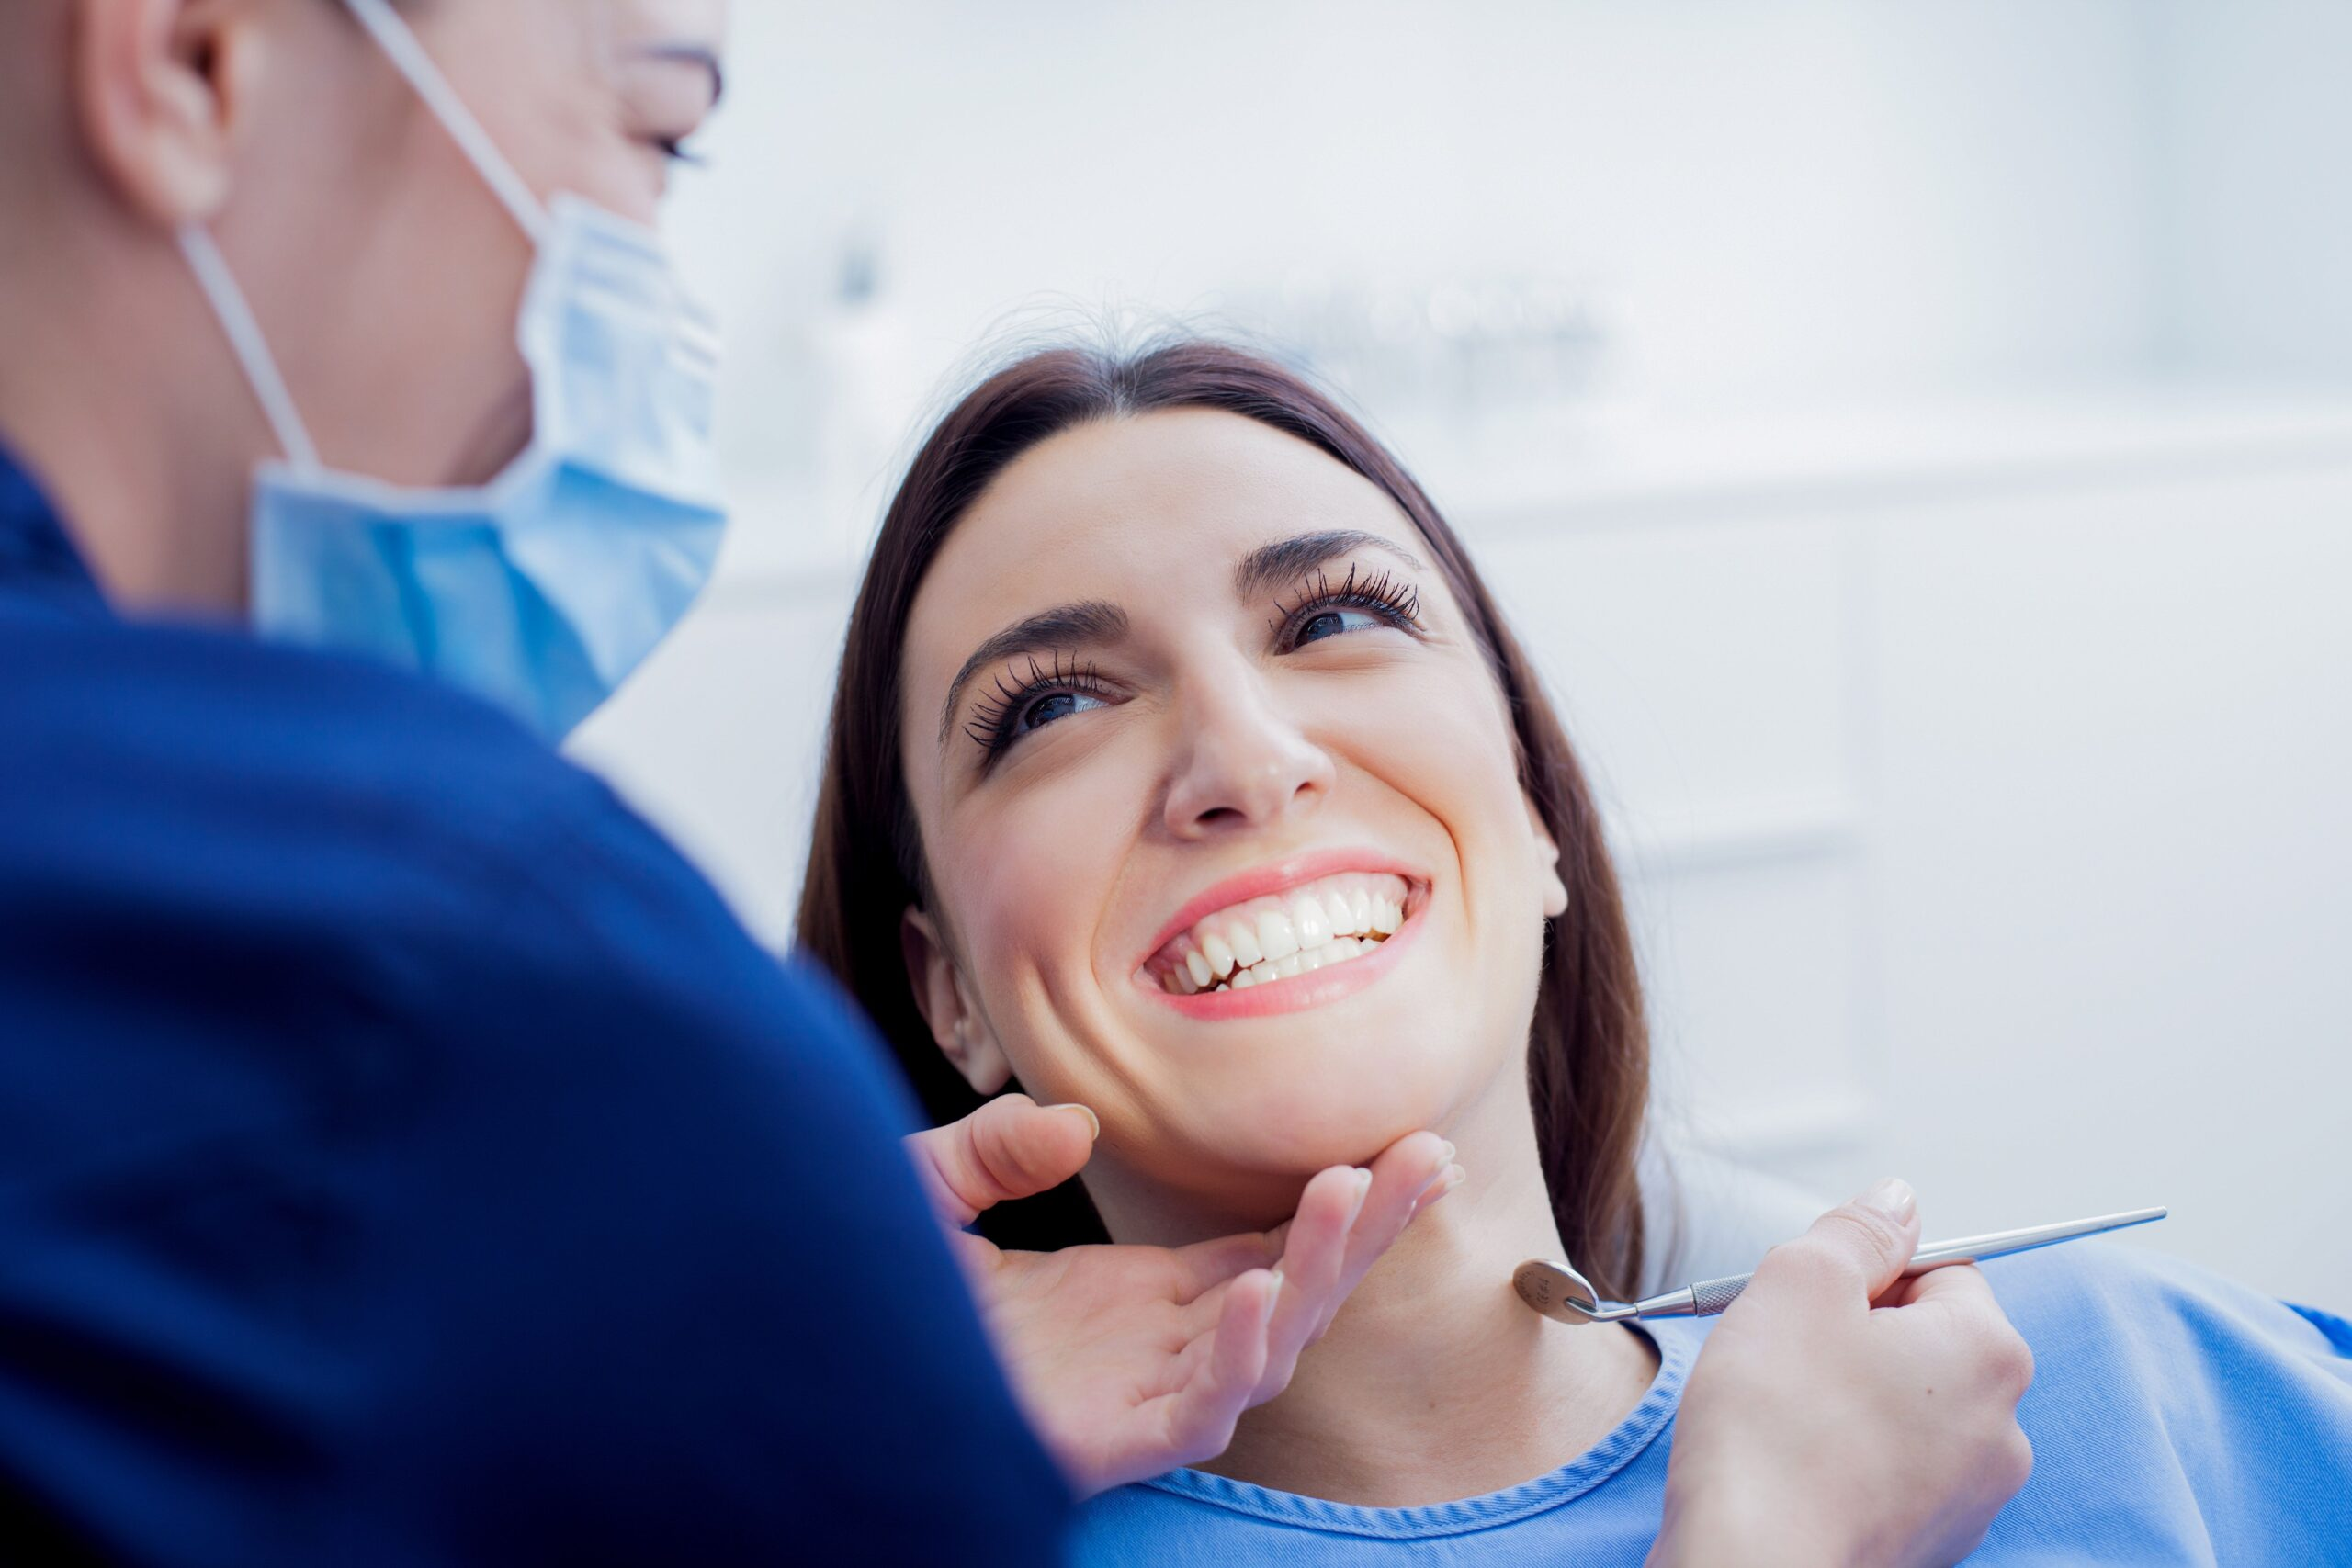 Hawarden IA Dentist | Do I Really Need an Exam?